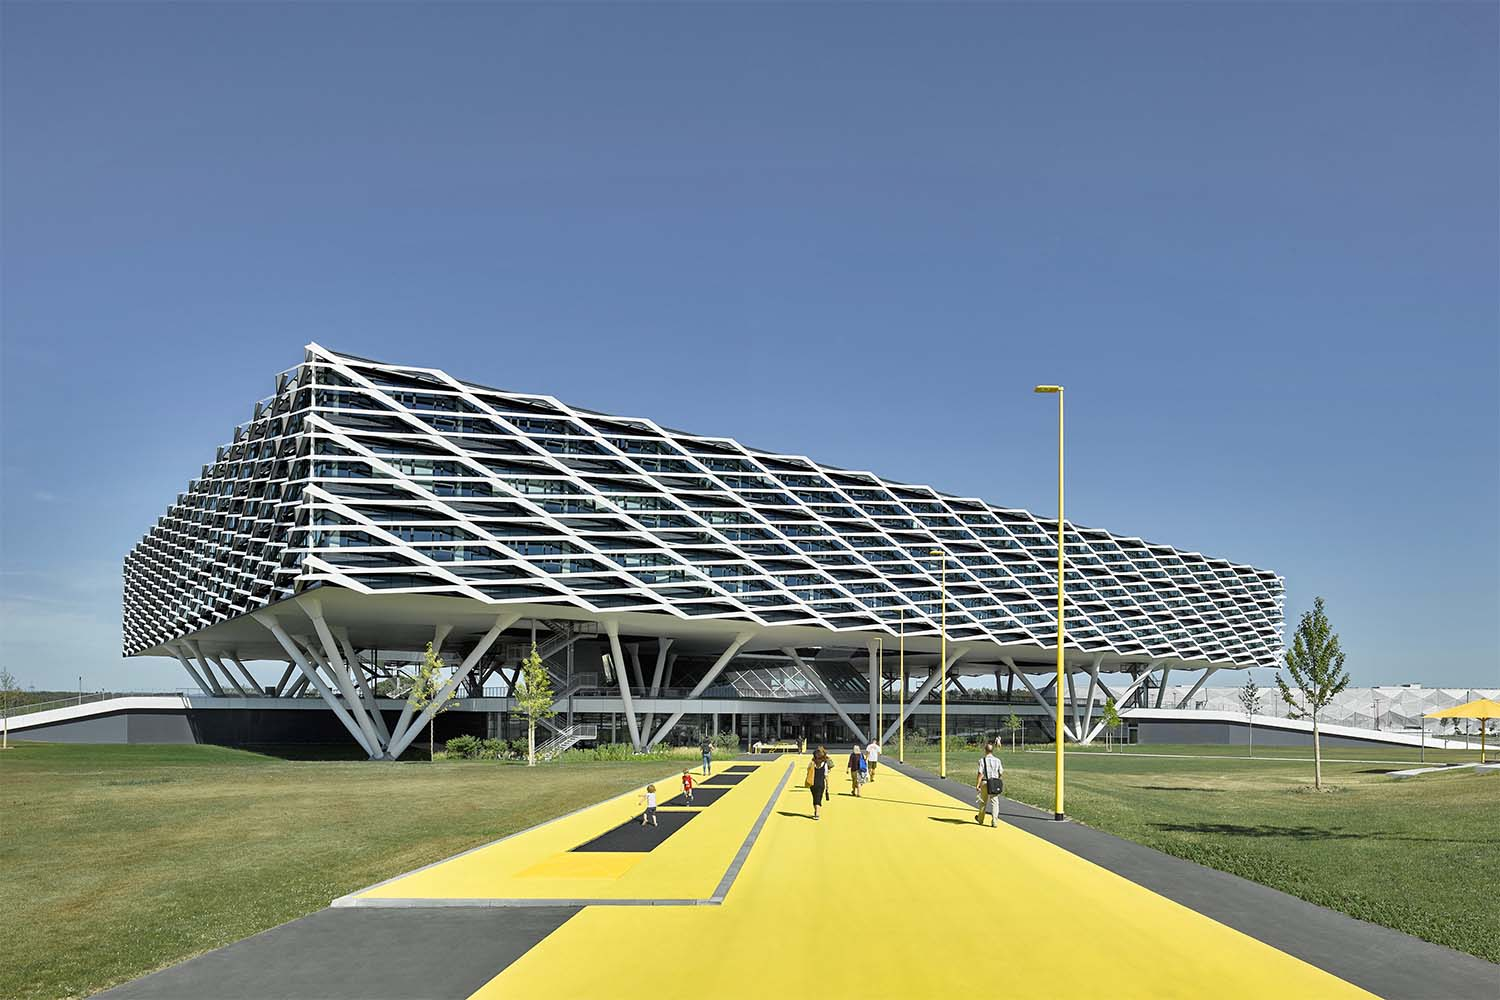 The sculptural shaped adidas ARENA forms a distinctive landmark on the adidas World of Sports campus David Matthiessen